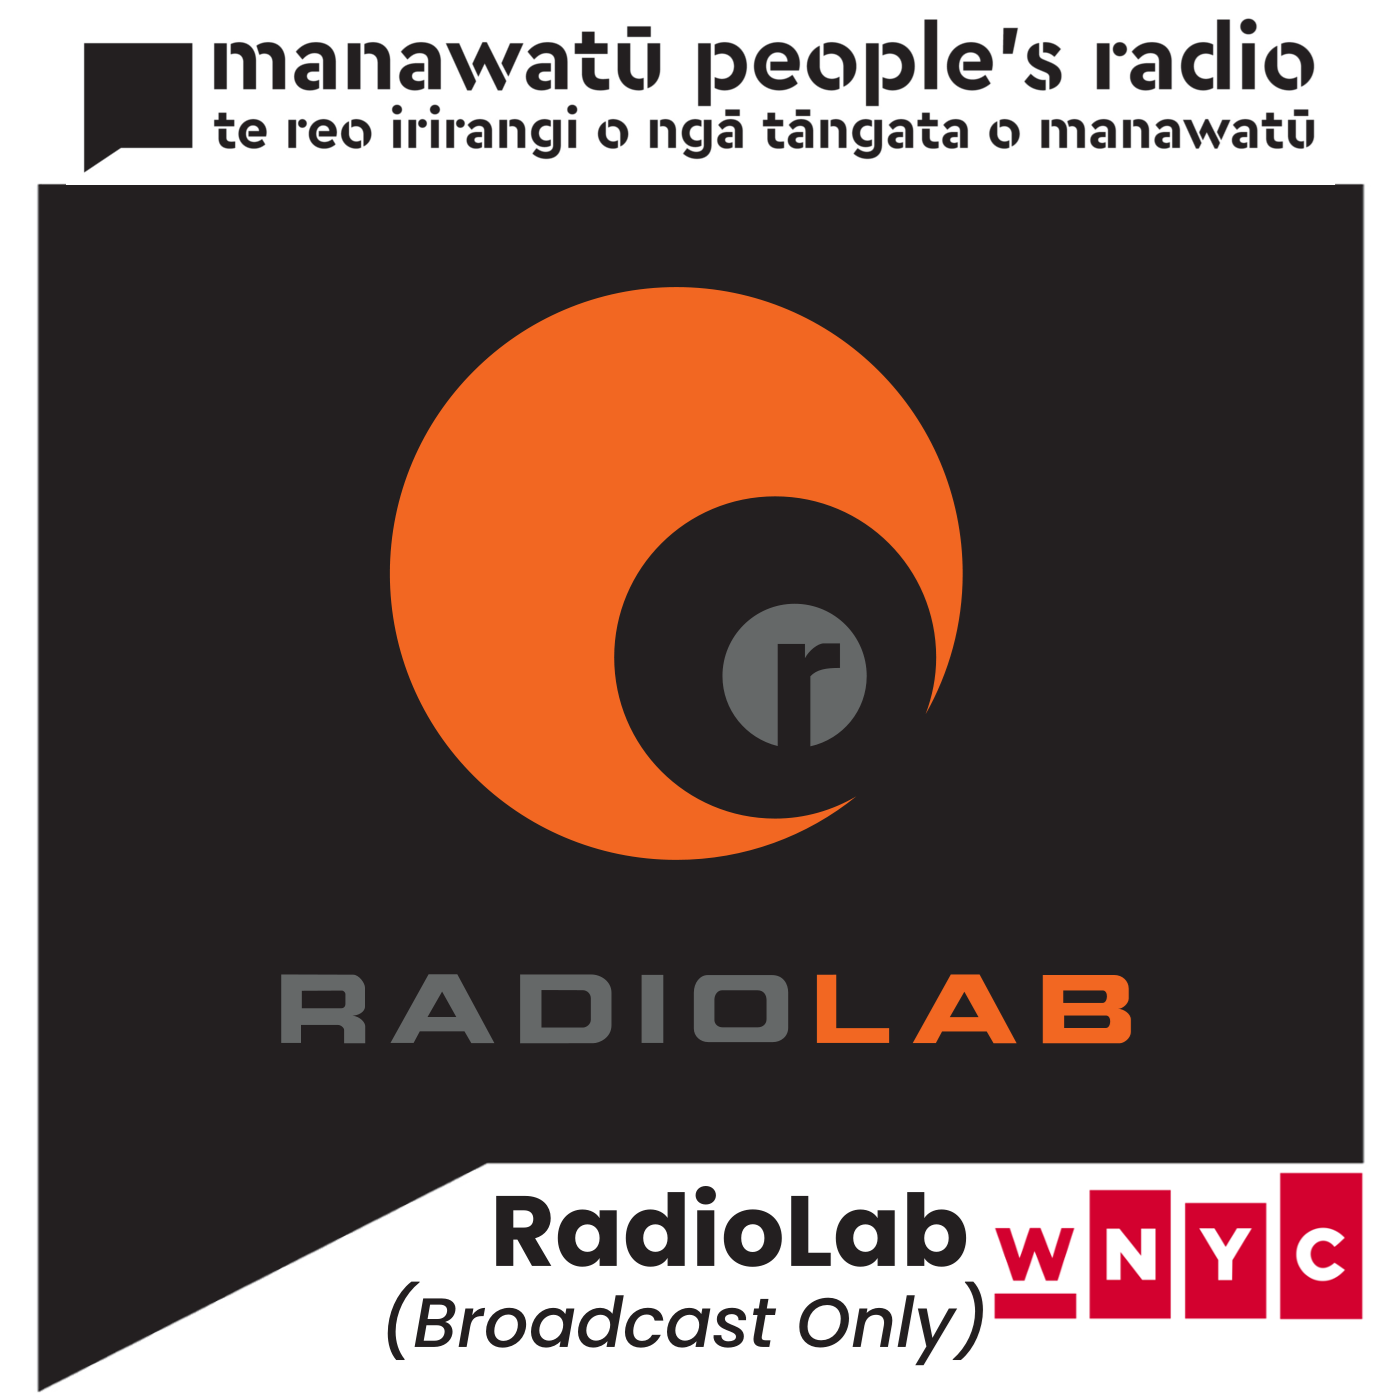 Radiolab (Broadcast Only)